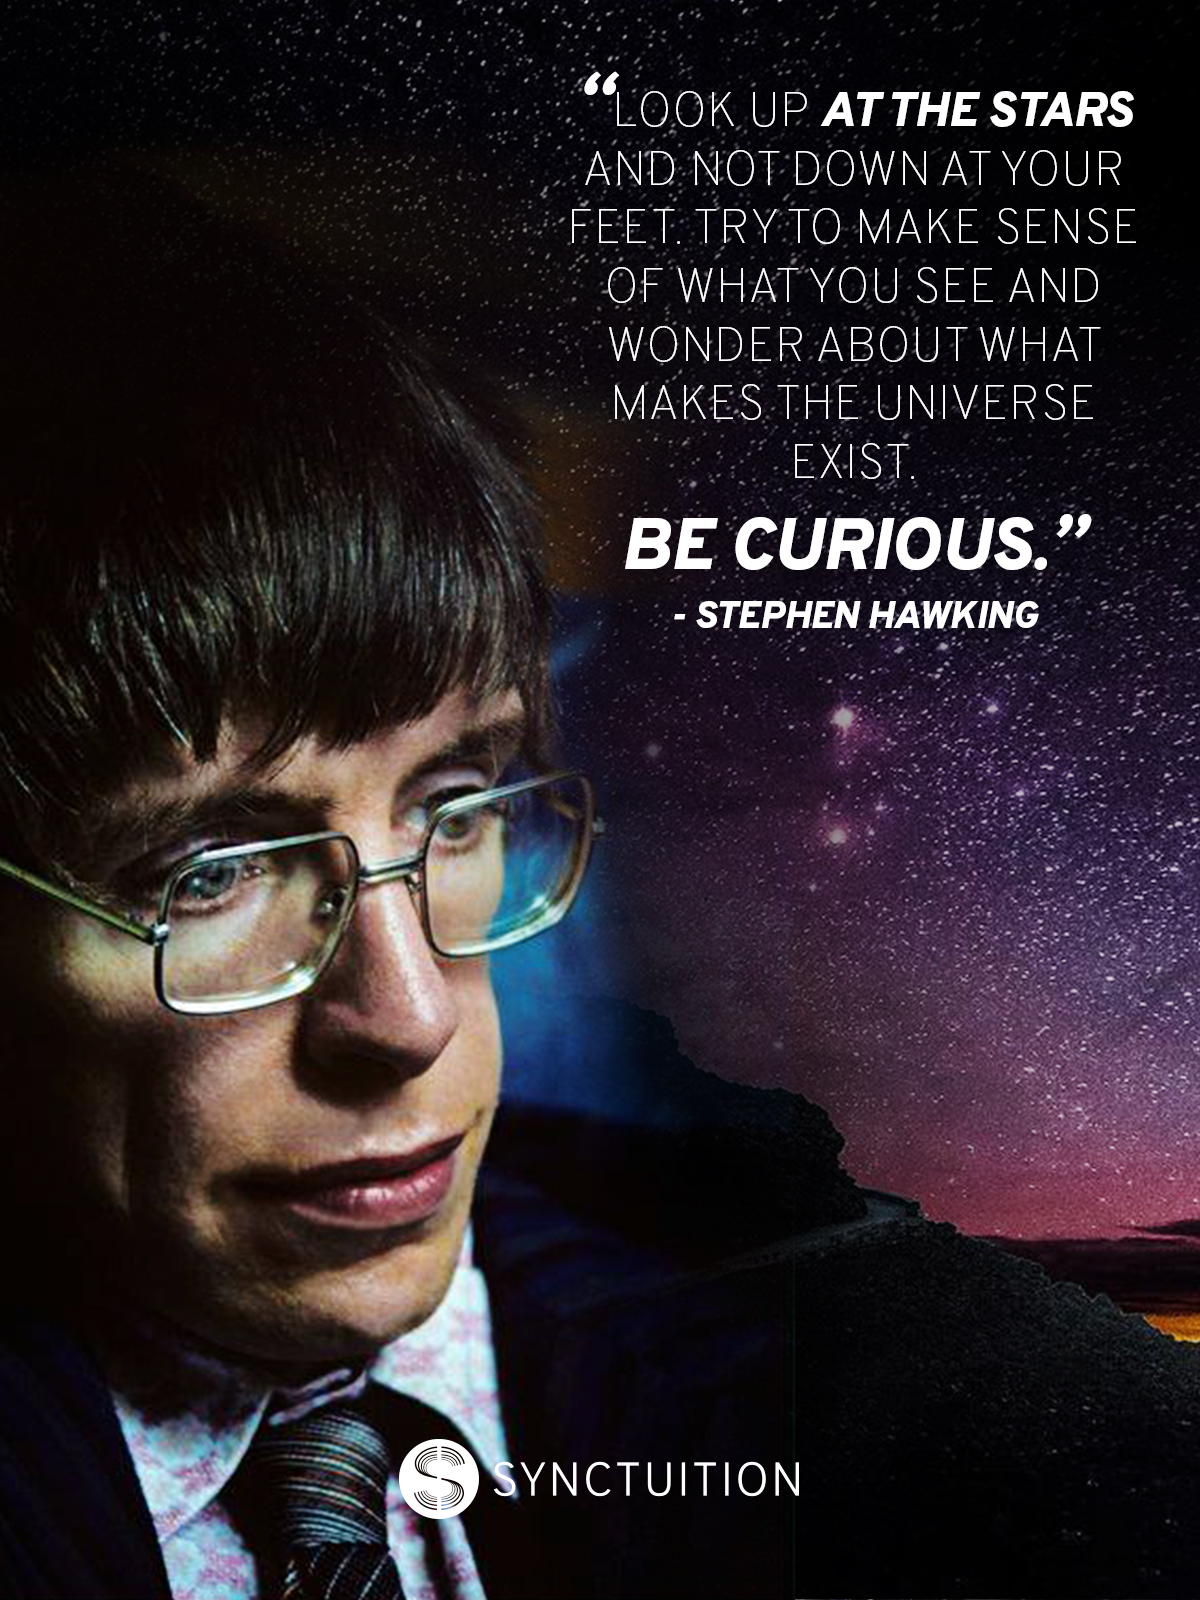 Stephan Hawking quote: